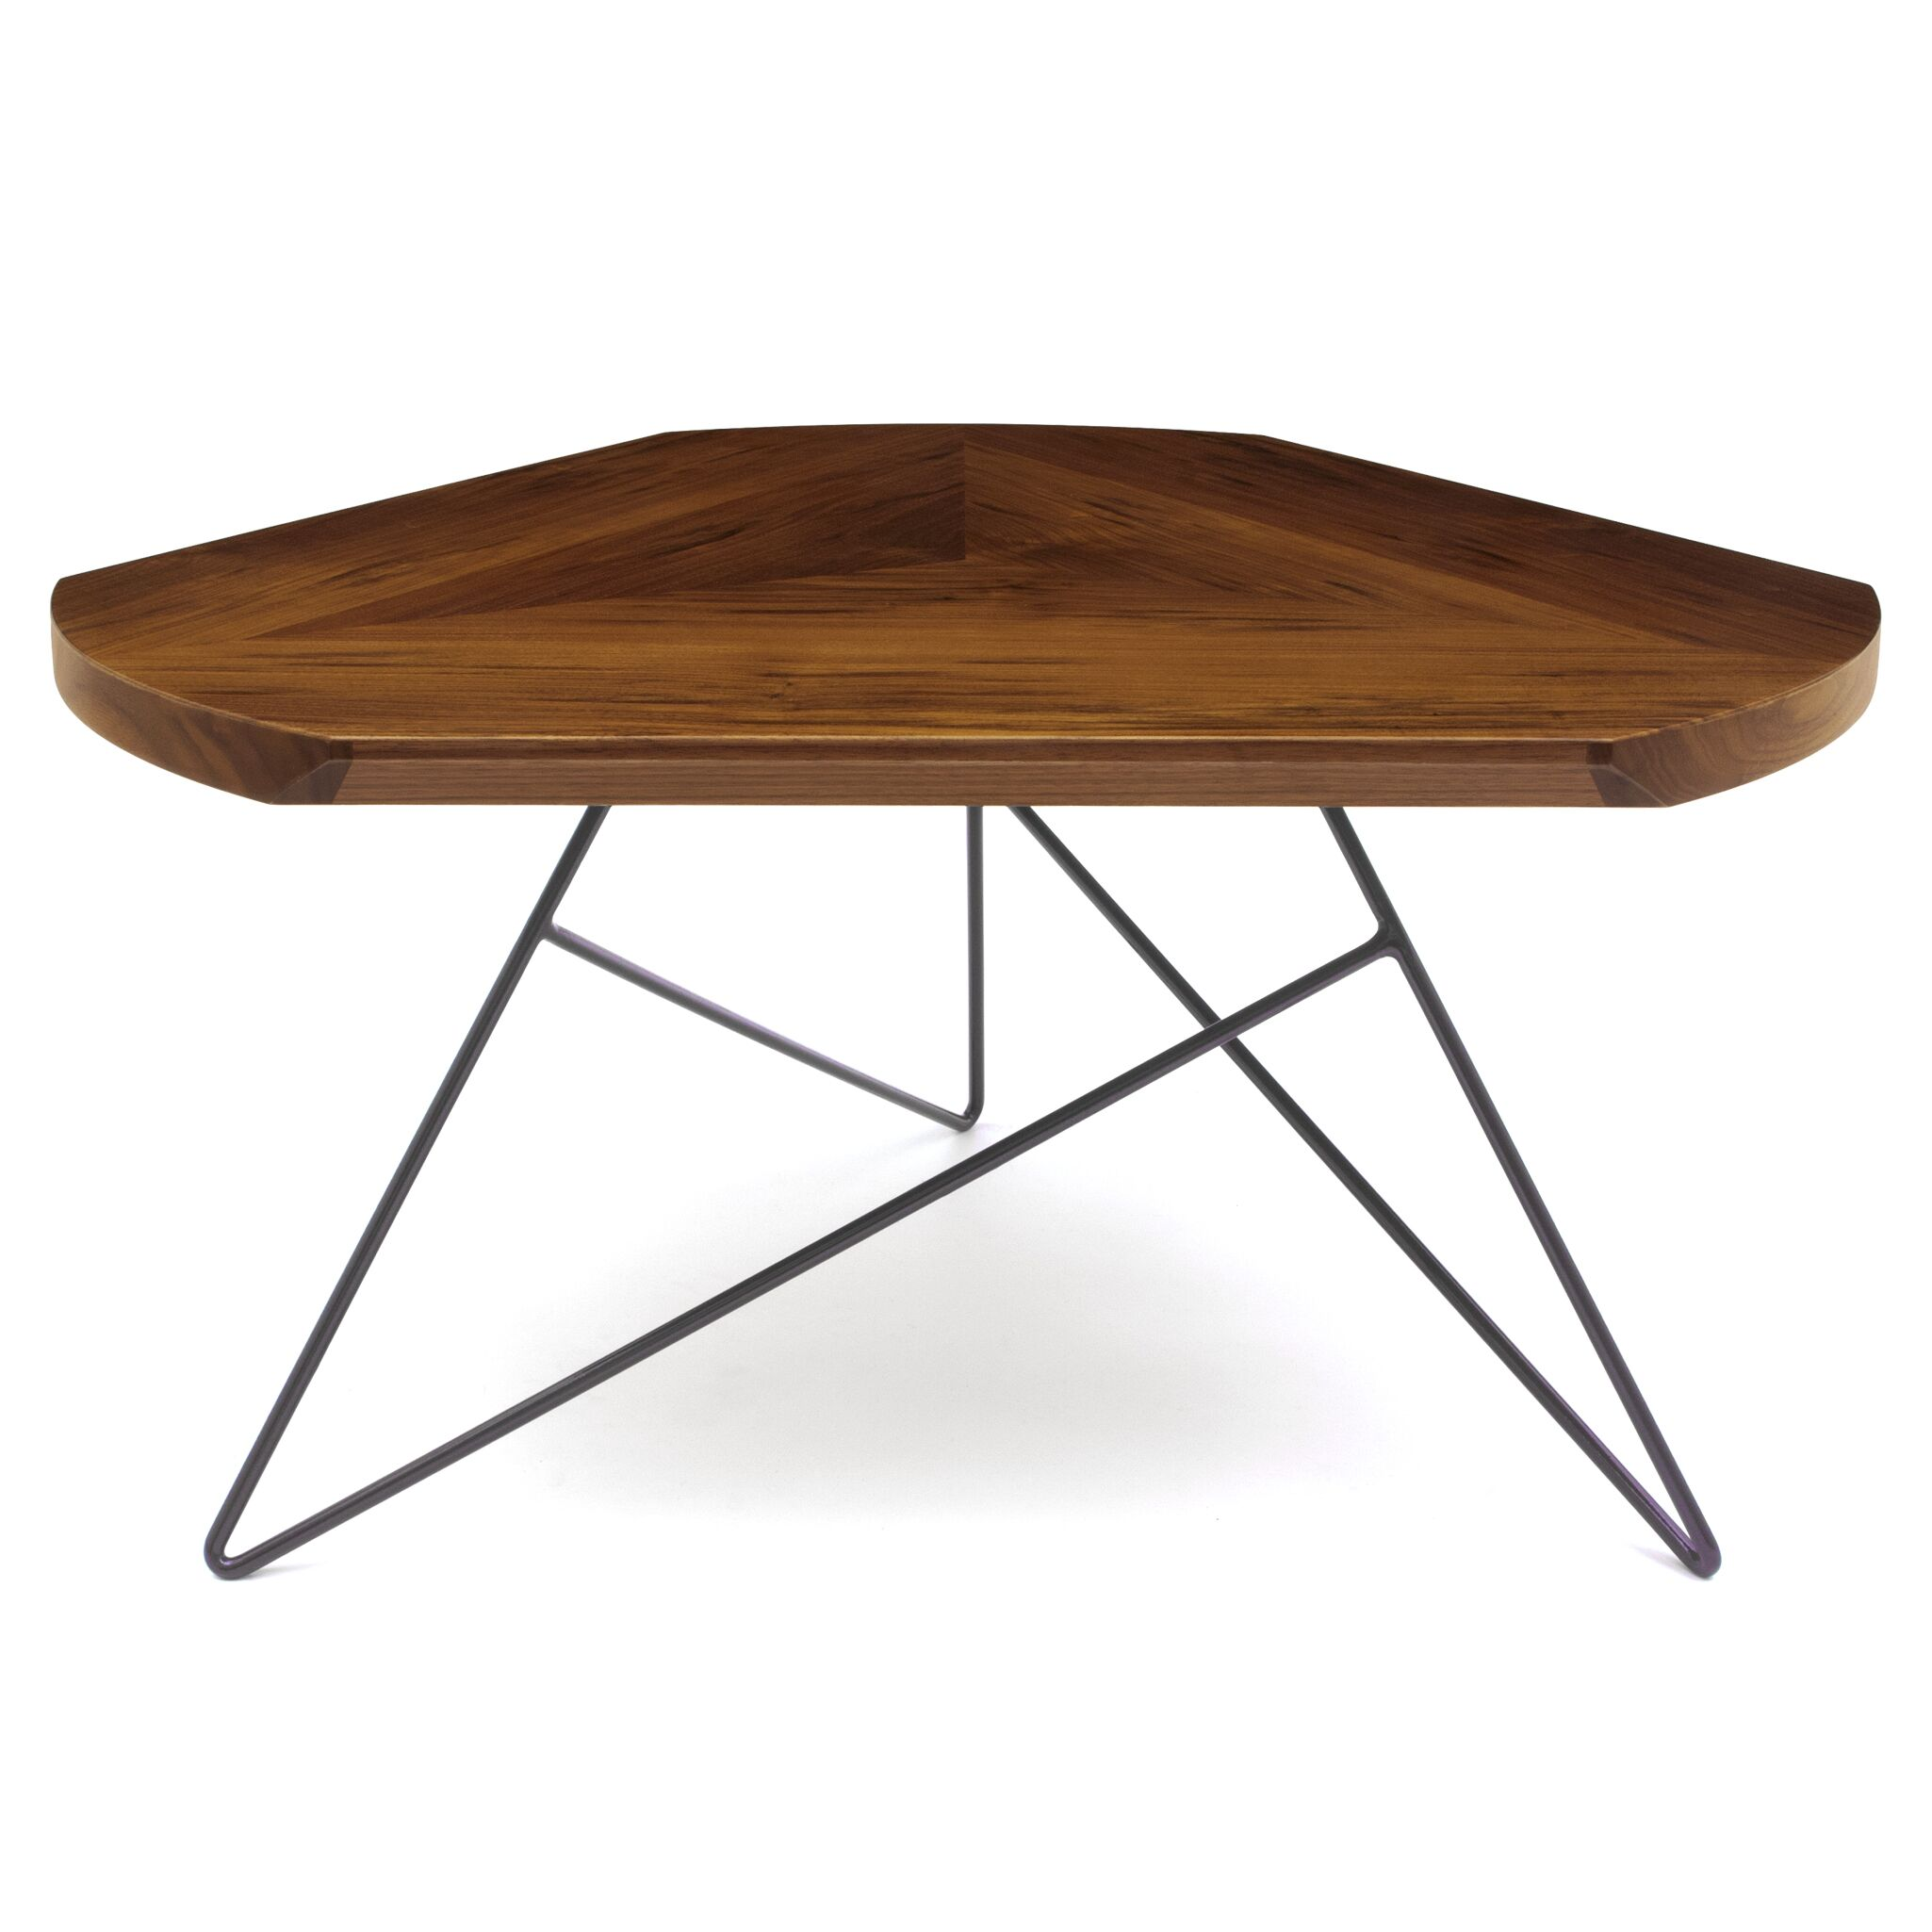 Deriving its geometric beauty from acute angles, the Acute Coffee Table features a thick veneer and solid walnut banding crafted into a contemporary pattern while the 3 metal legs provide a reliable, and eye-catching base. Features: -Product Type: Cof...